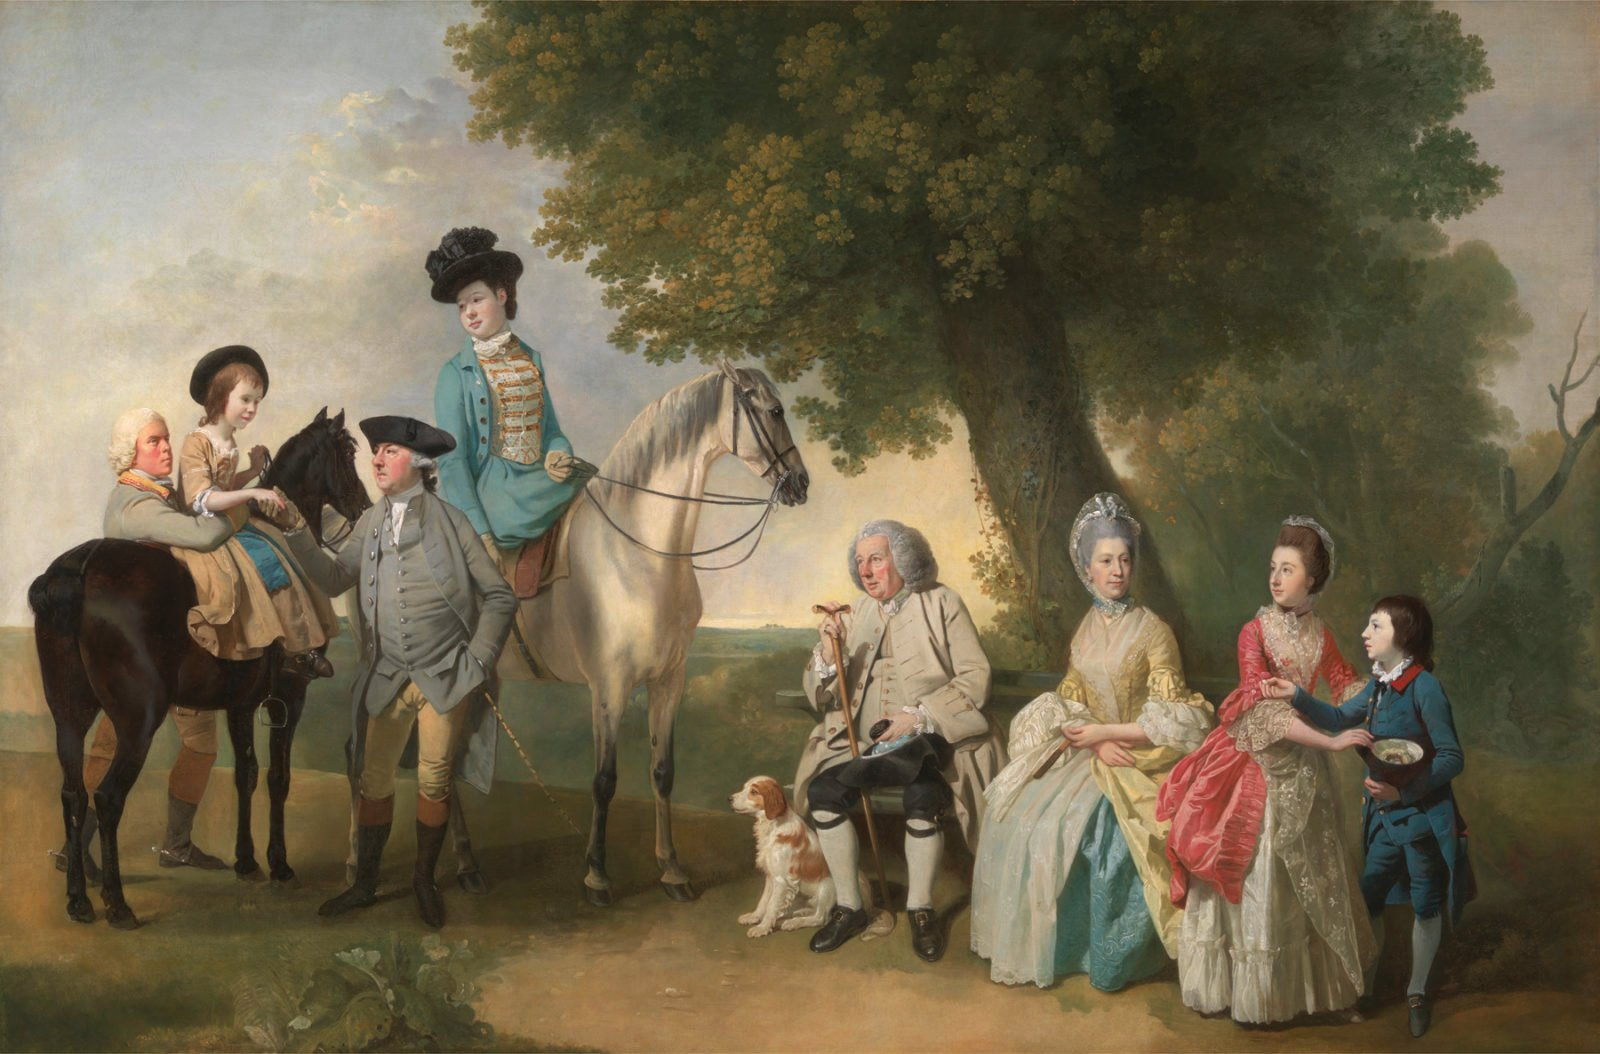 Equestrians Through the Ages